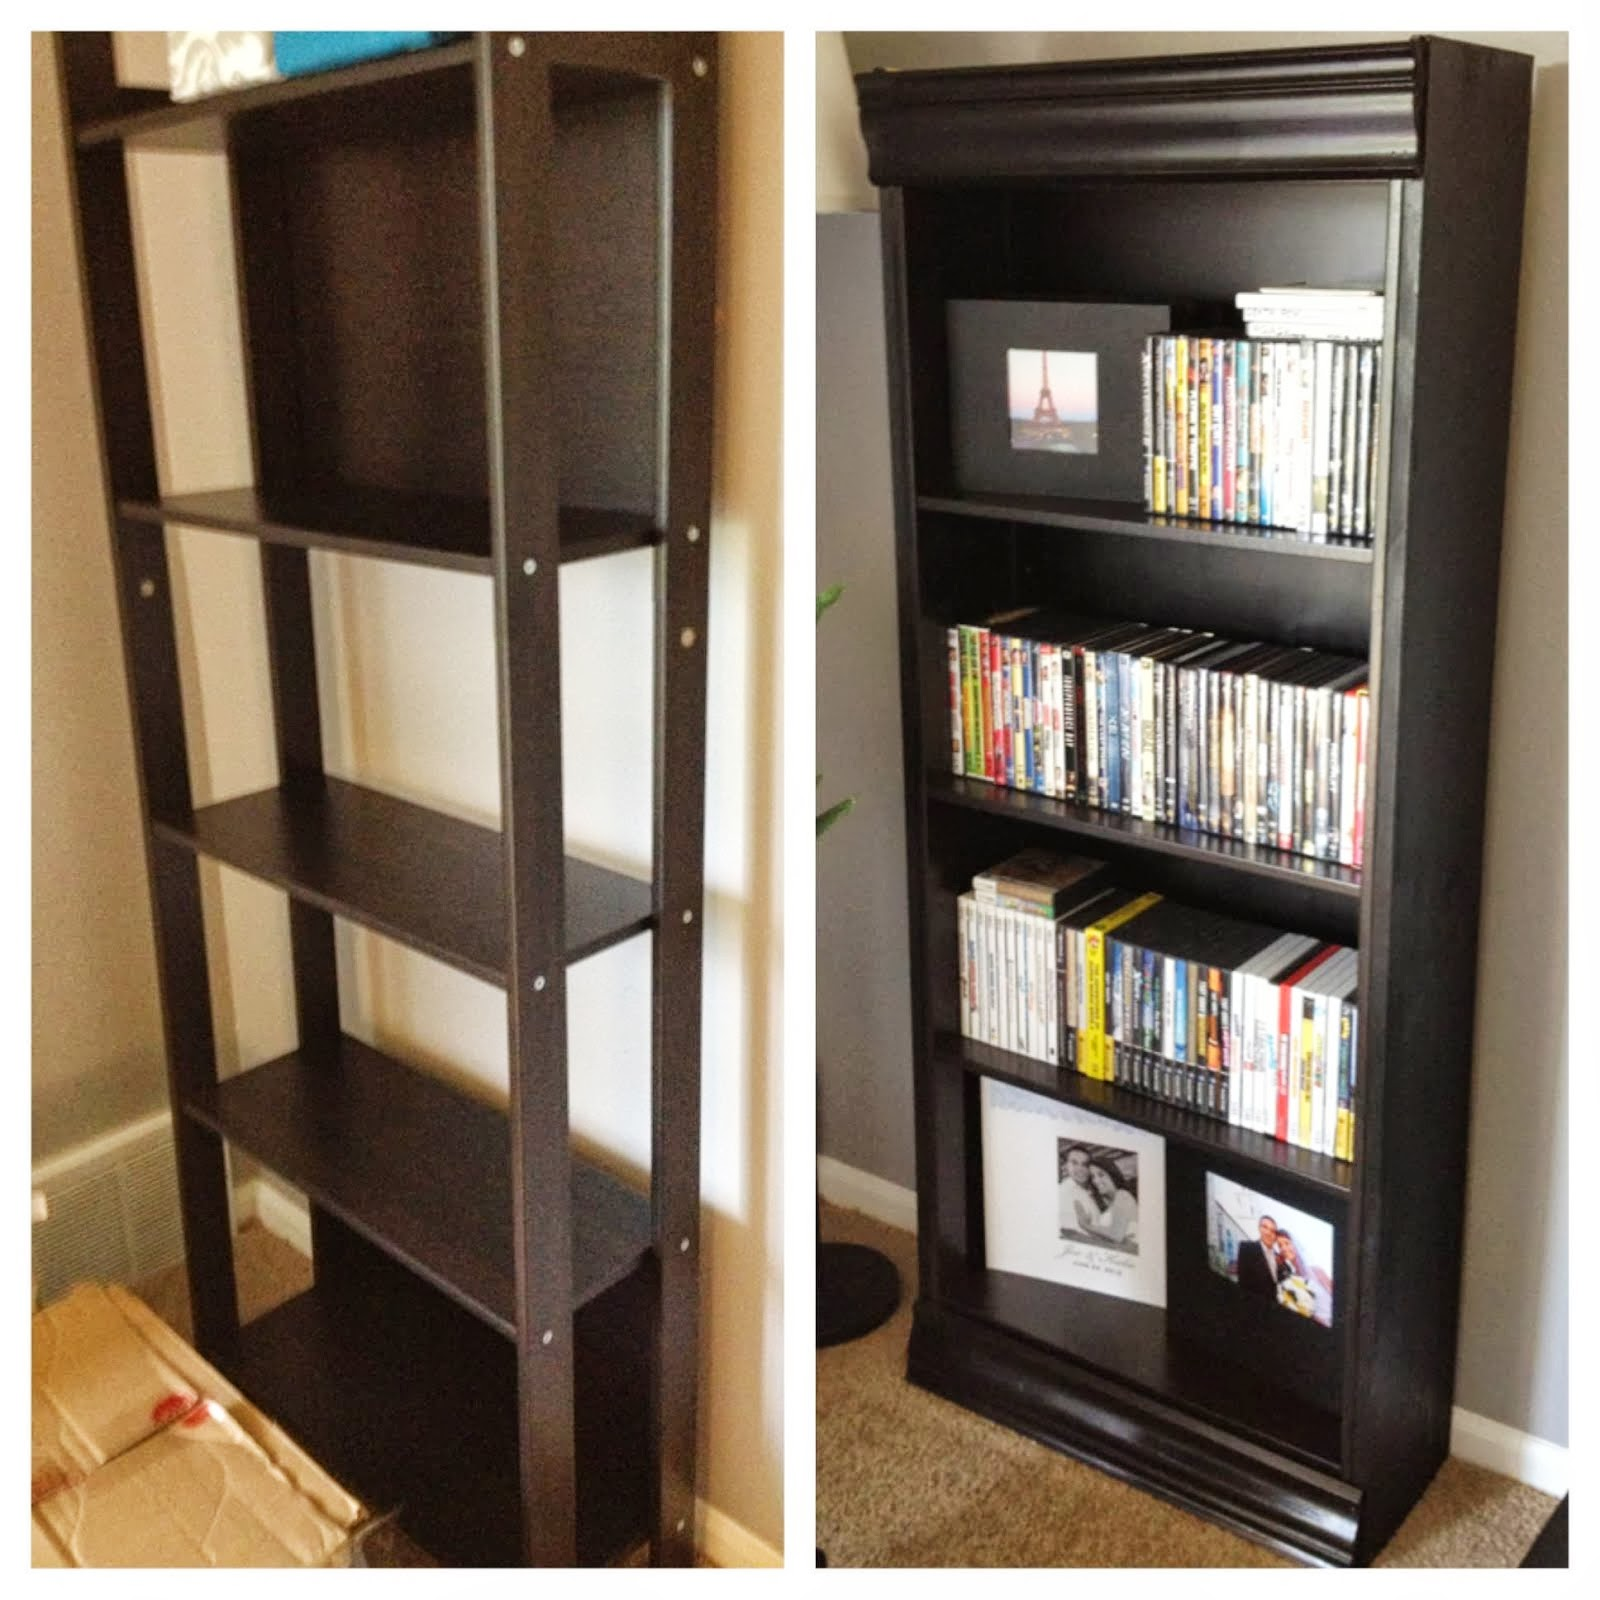 Laiva Bookcase Turned Fancy